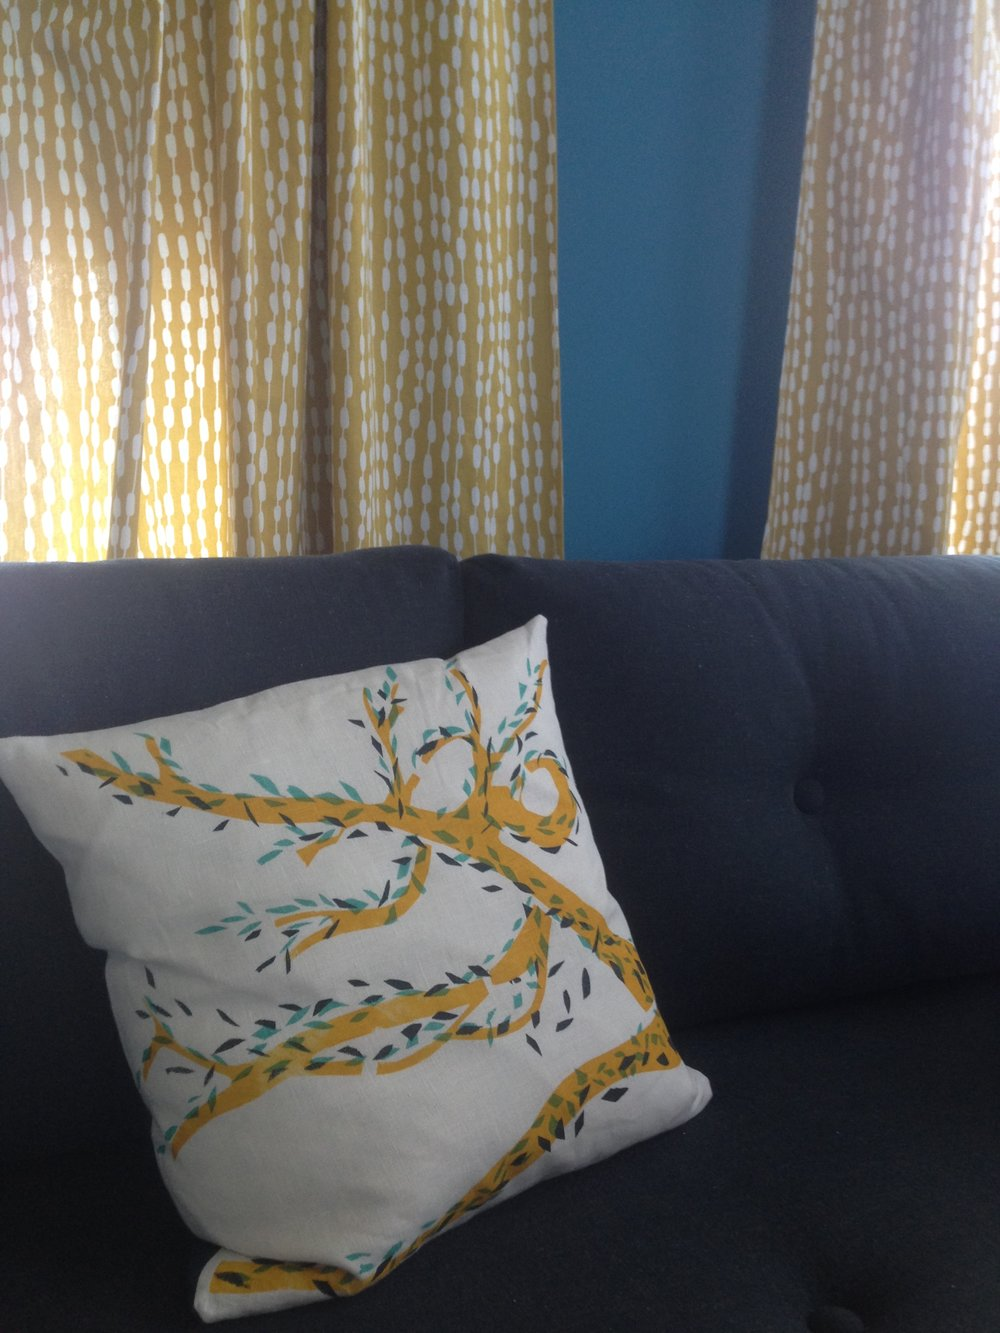 Liz's cushion in her blue & yellow home office.